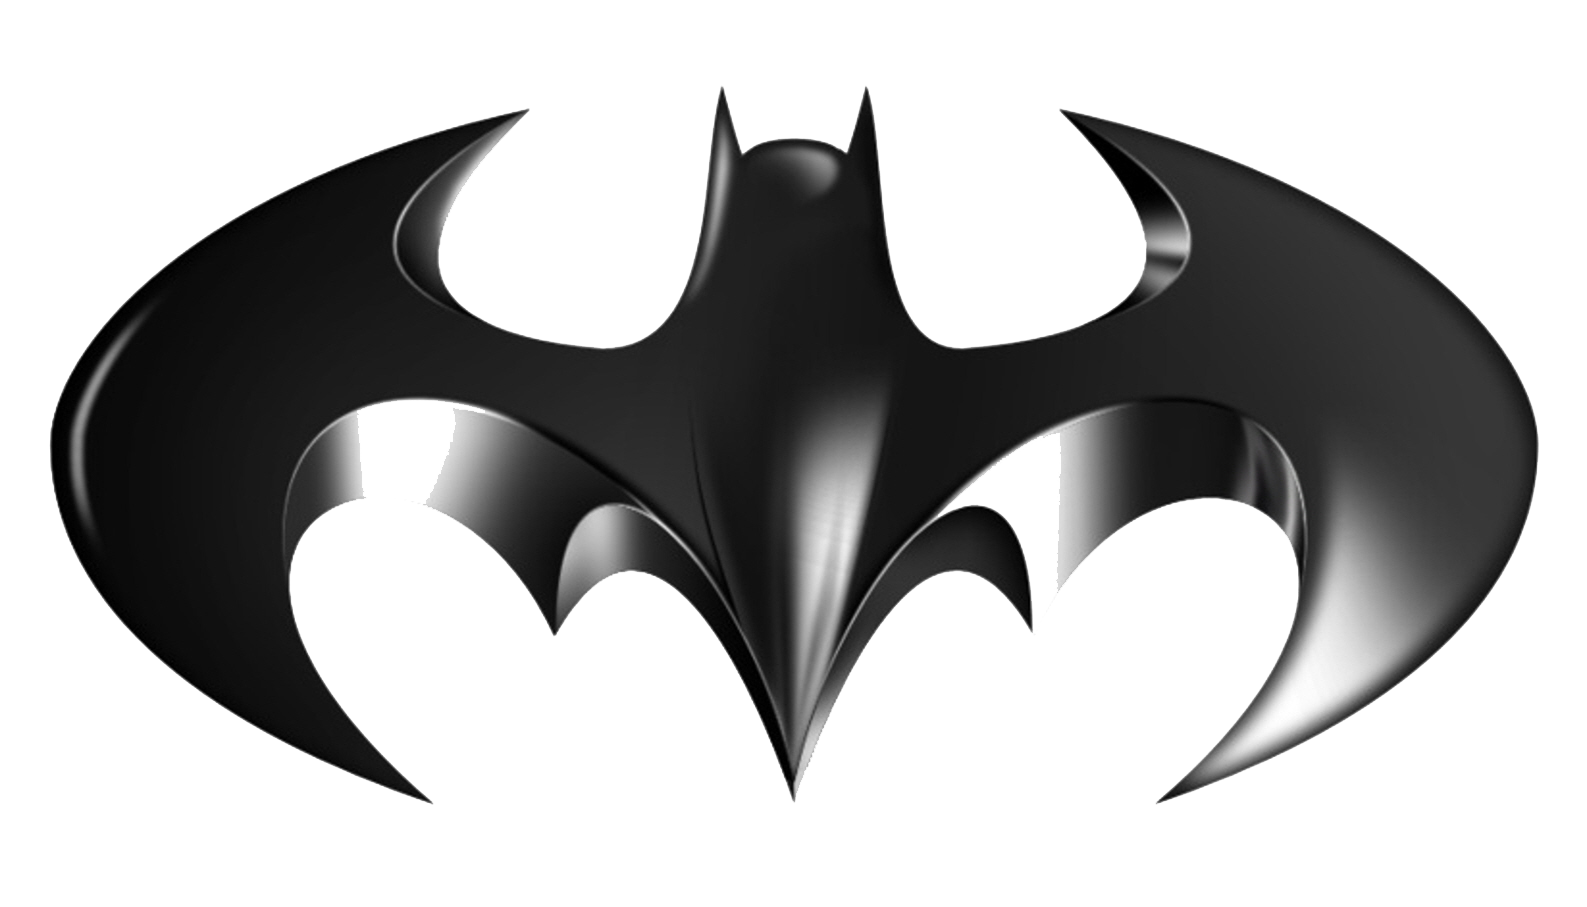 PNG File Name: Batman PNG HD Dimension: 1587x907. Image Type: .png. Posted  on: Aug 26th, 2016. Category: Movies Tags: Batman - Batman PNG